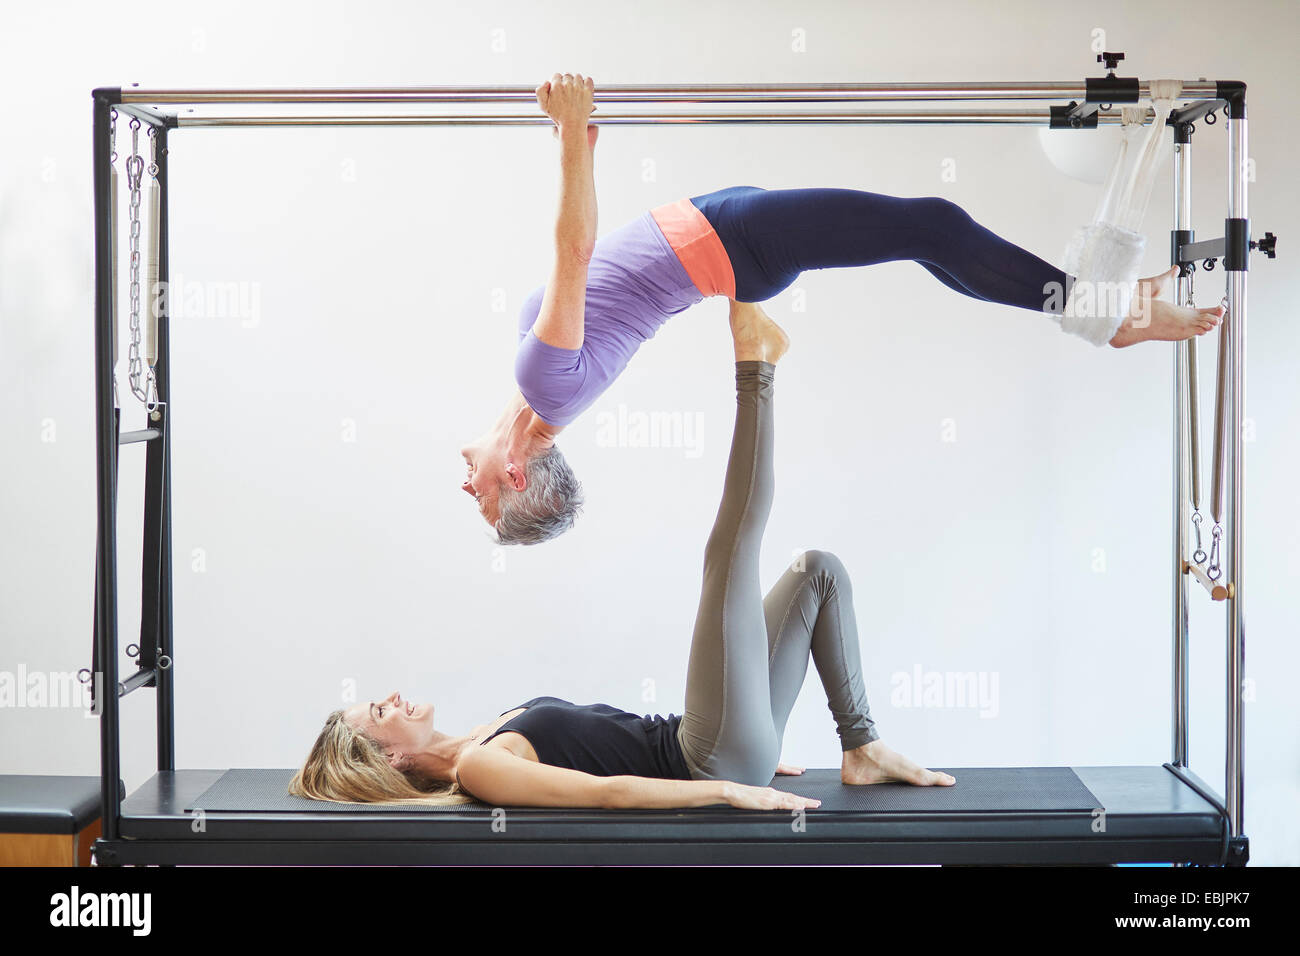 Two mature women practicing pilates on trapeze table in pilates gym - Stock Image